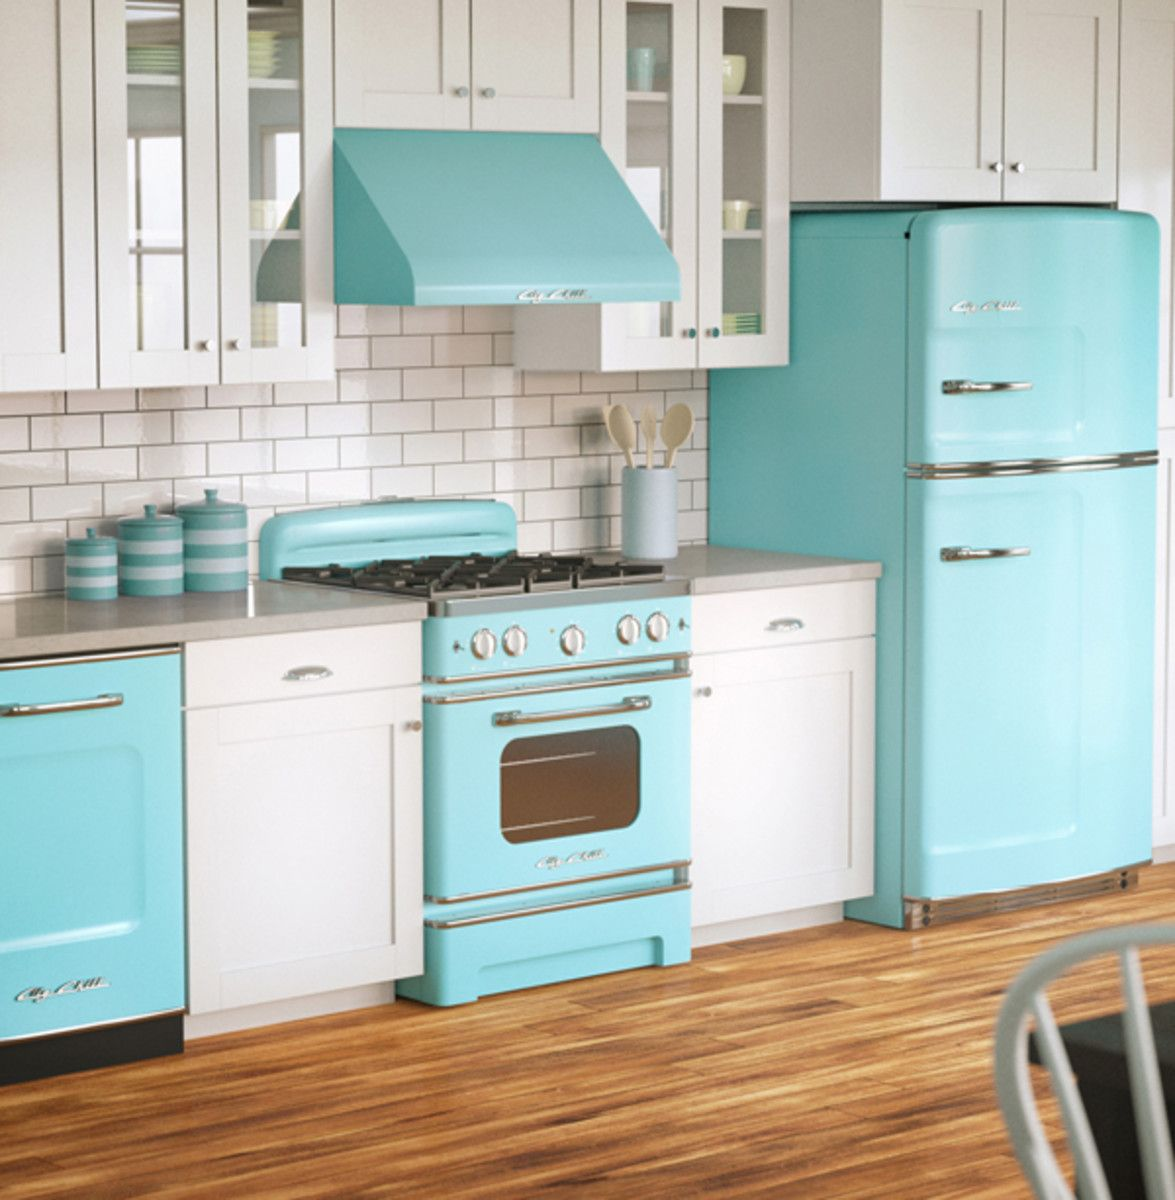 Chill Maker Of Retro Refrigerators Now Offers A Full Line Mid Century Kitchen Liances